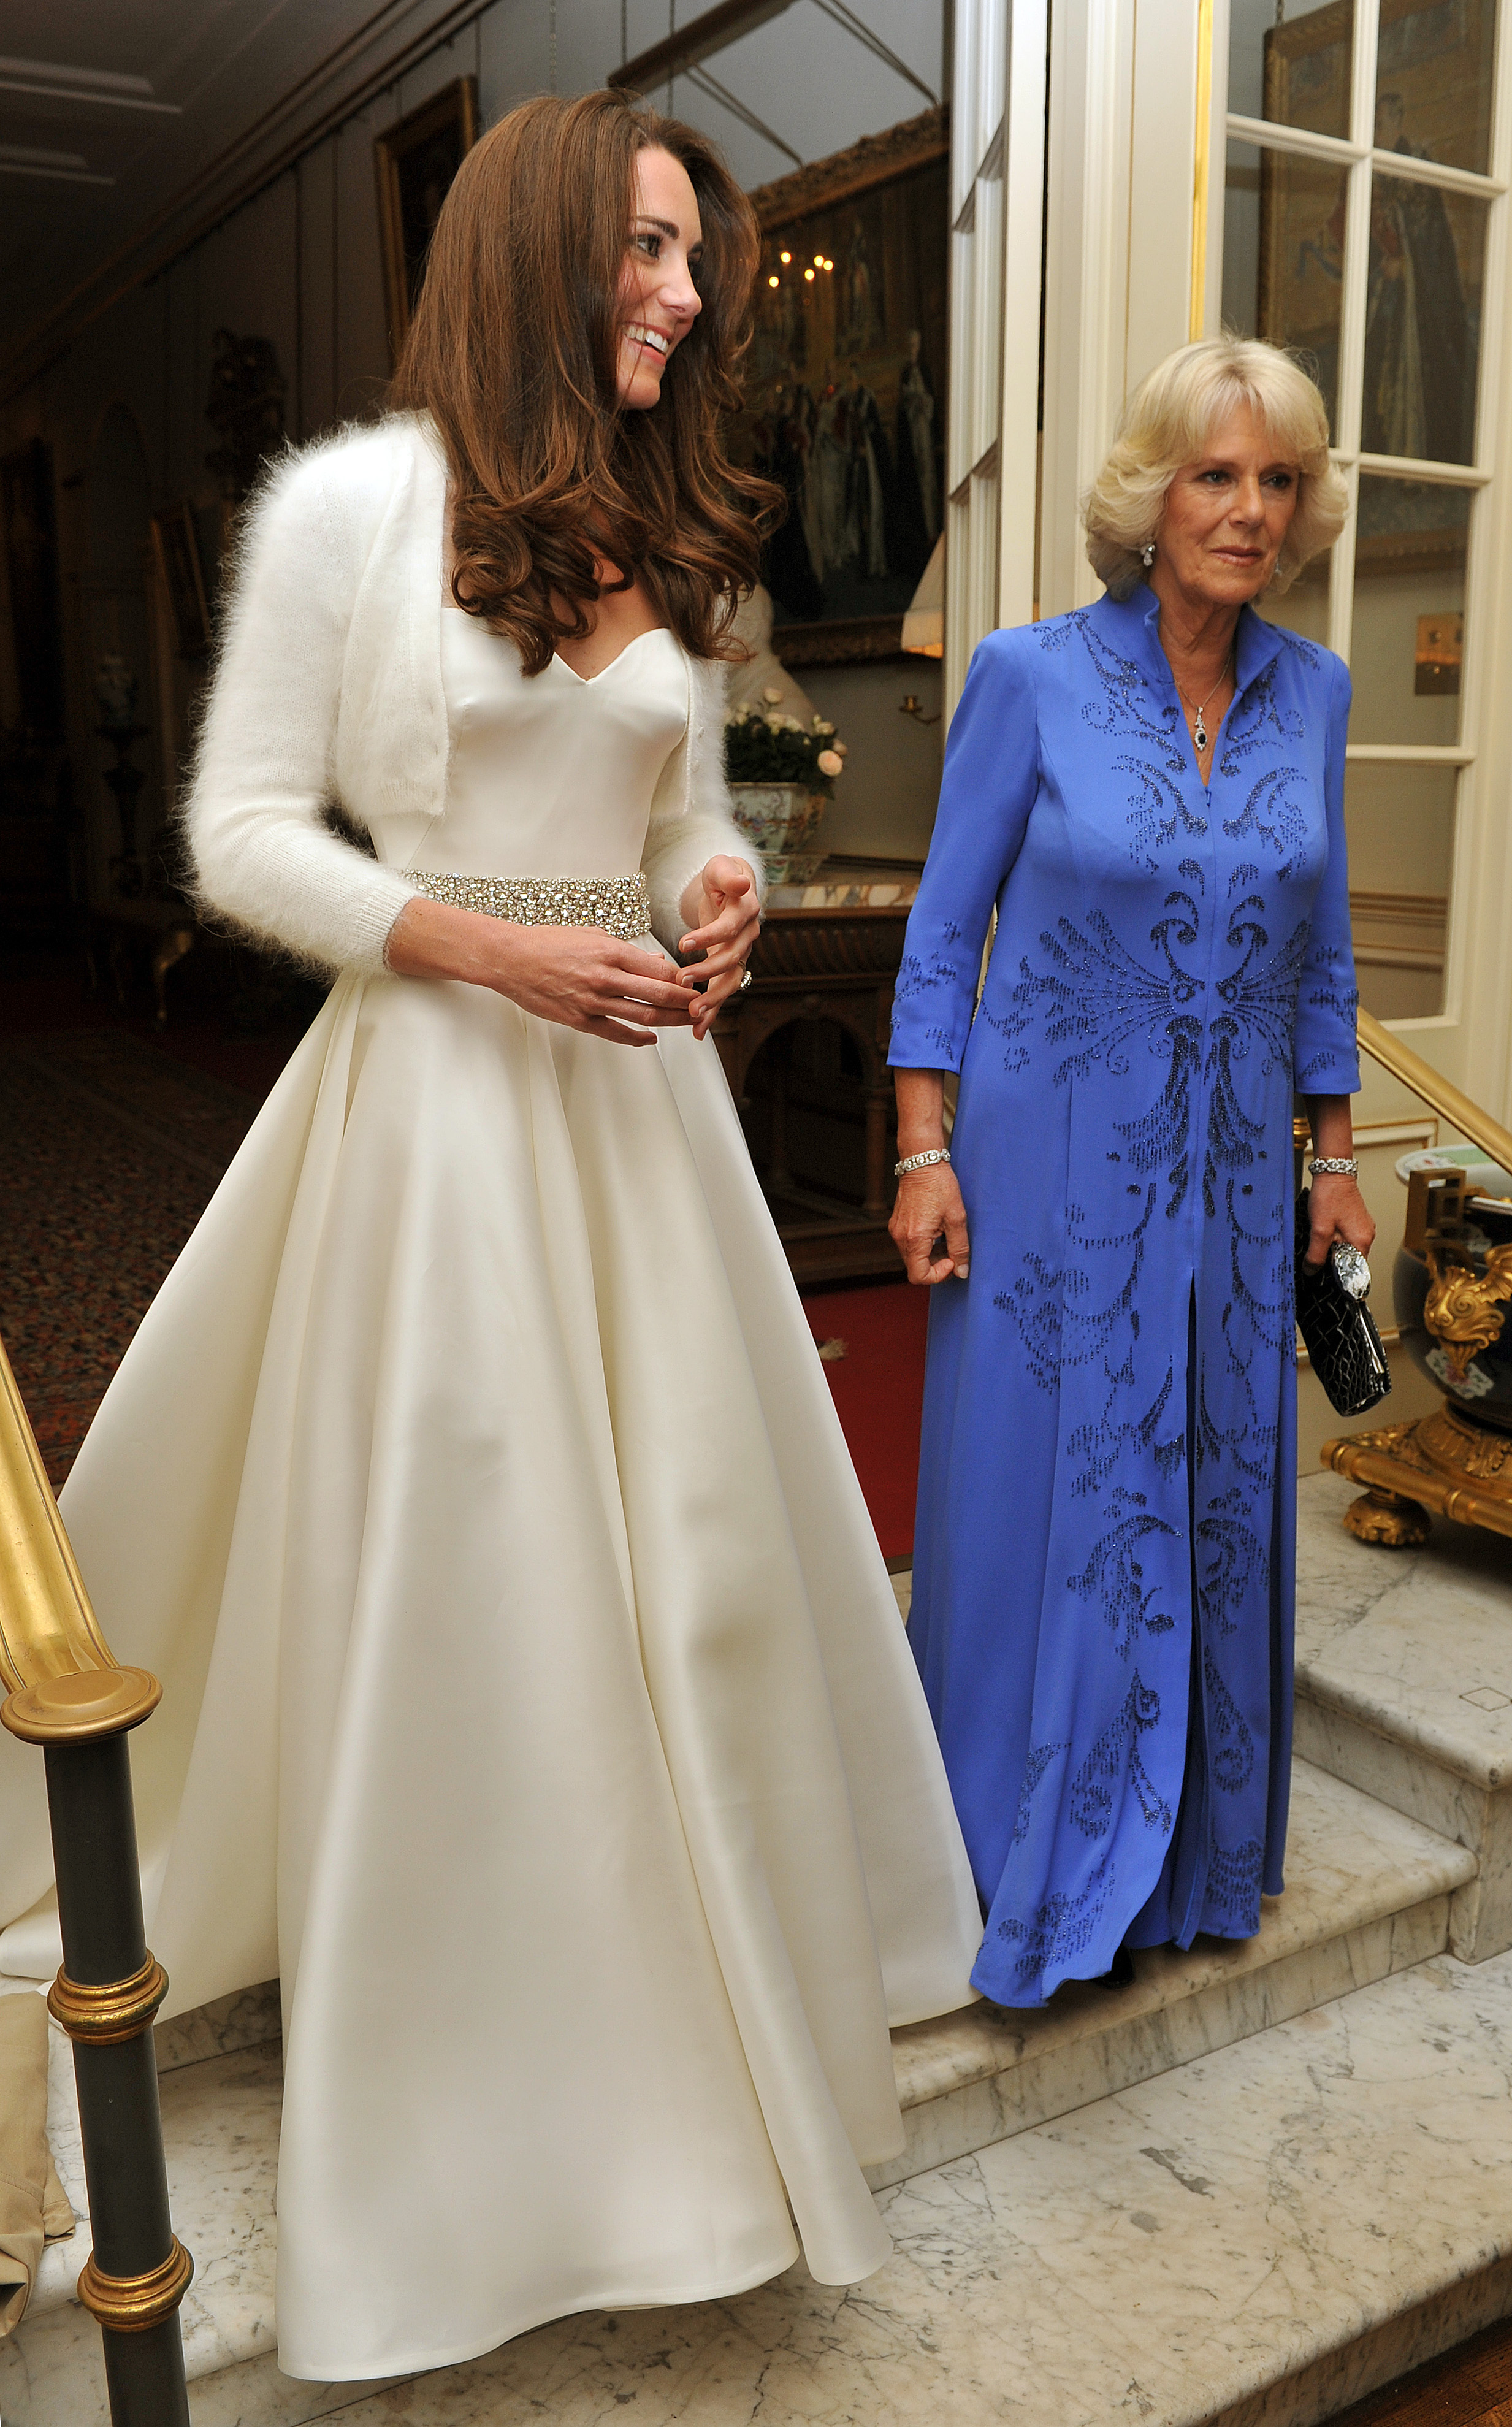 Catherine, Duchess of Cambridge (L) and Camilla, Duchess of Cornwall leave Clarence House to travel to Buckingham Palace for the evening celebrations following her wedding to Prince William, Duke of Cambridge on April 29, 2011, in London, England. (Getty Images)